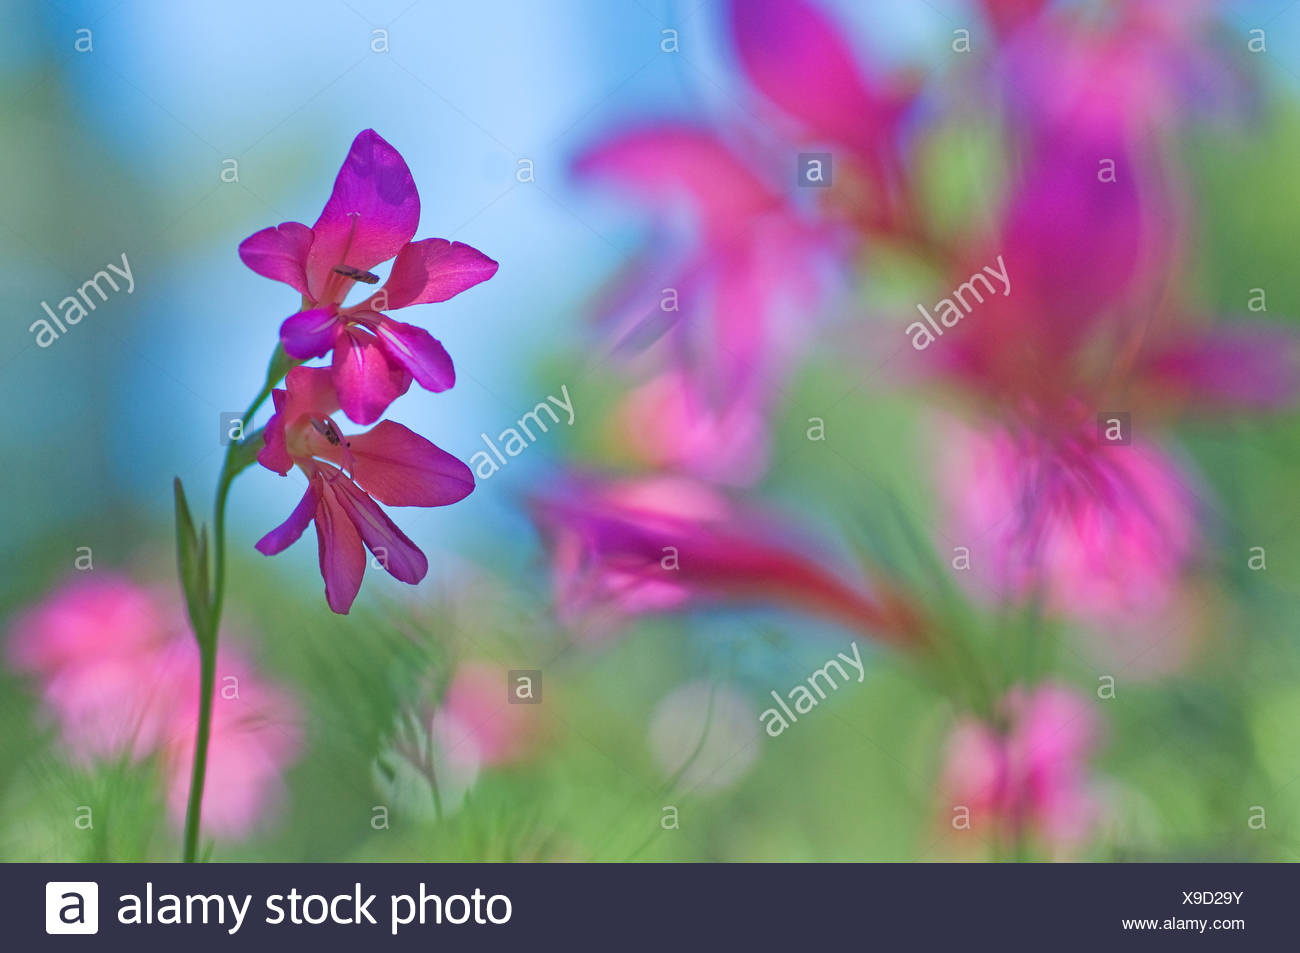 Wild gladiolus (Gladiolus illyricus) flowers, Menorca, Balearic Islands, Spain, Europe - Stock Image